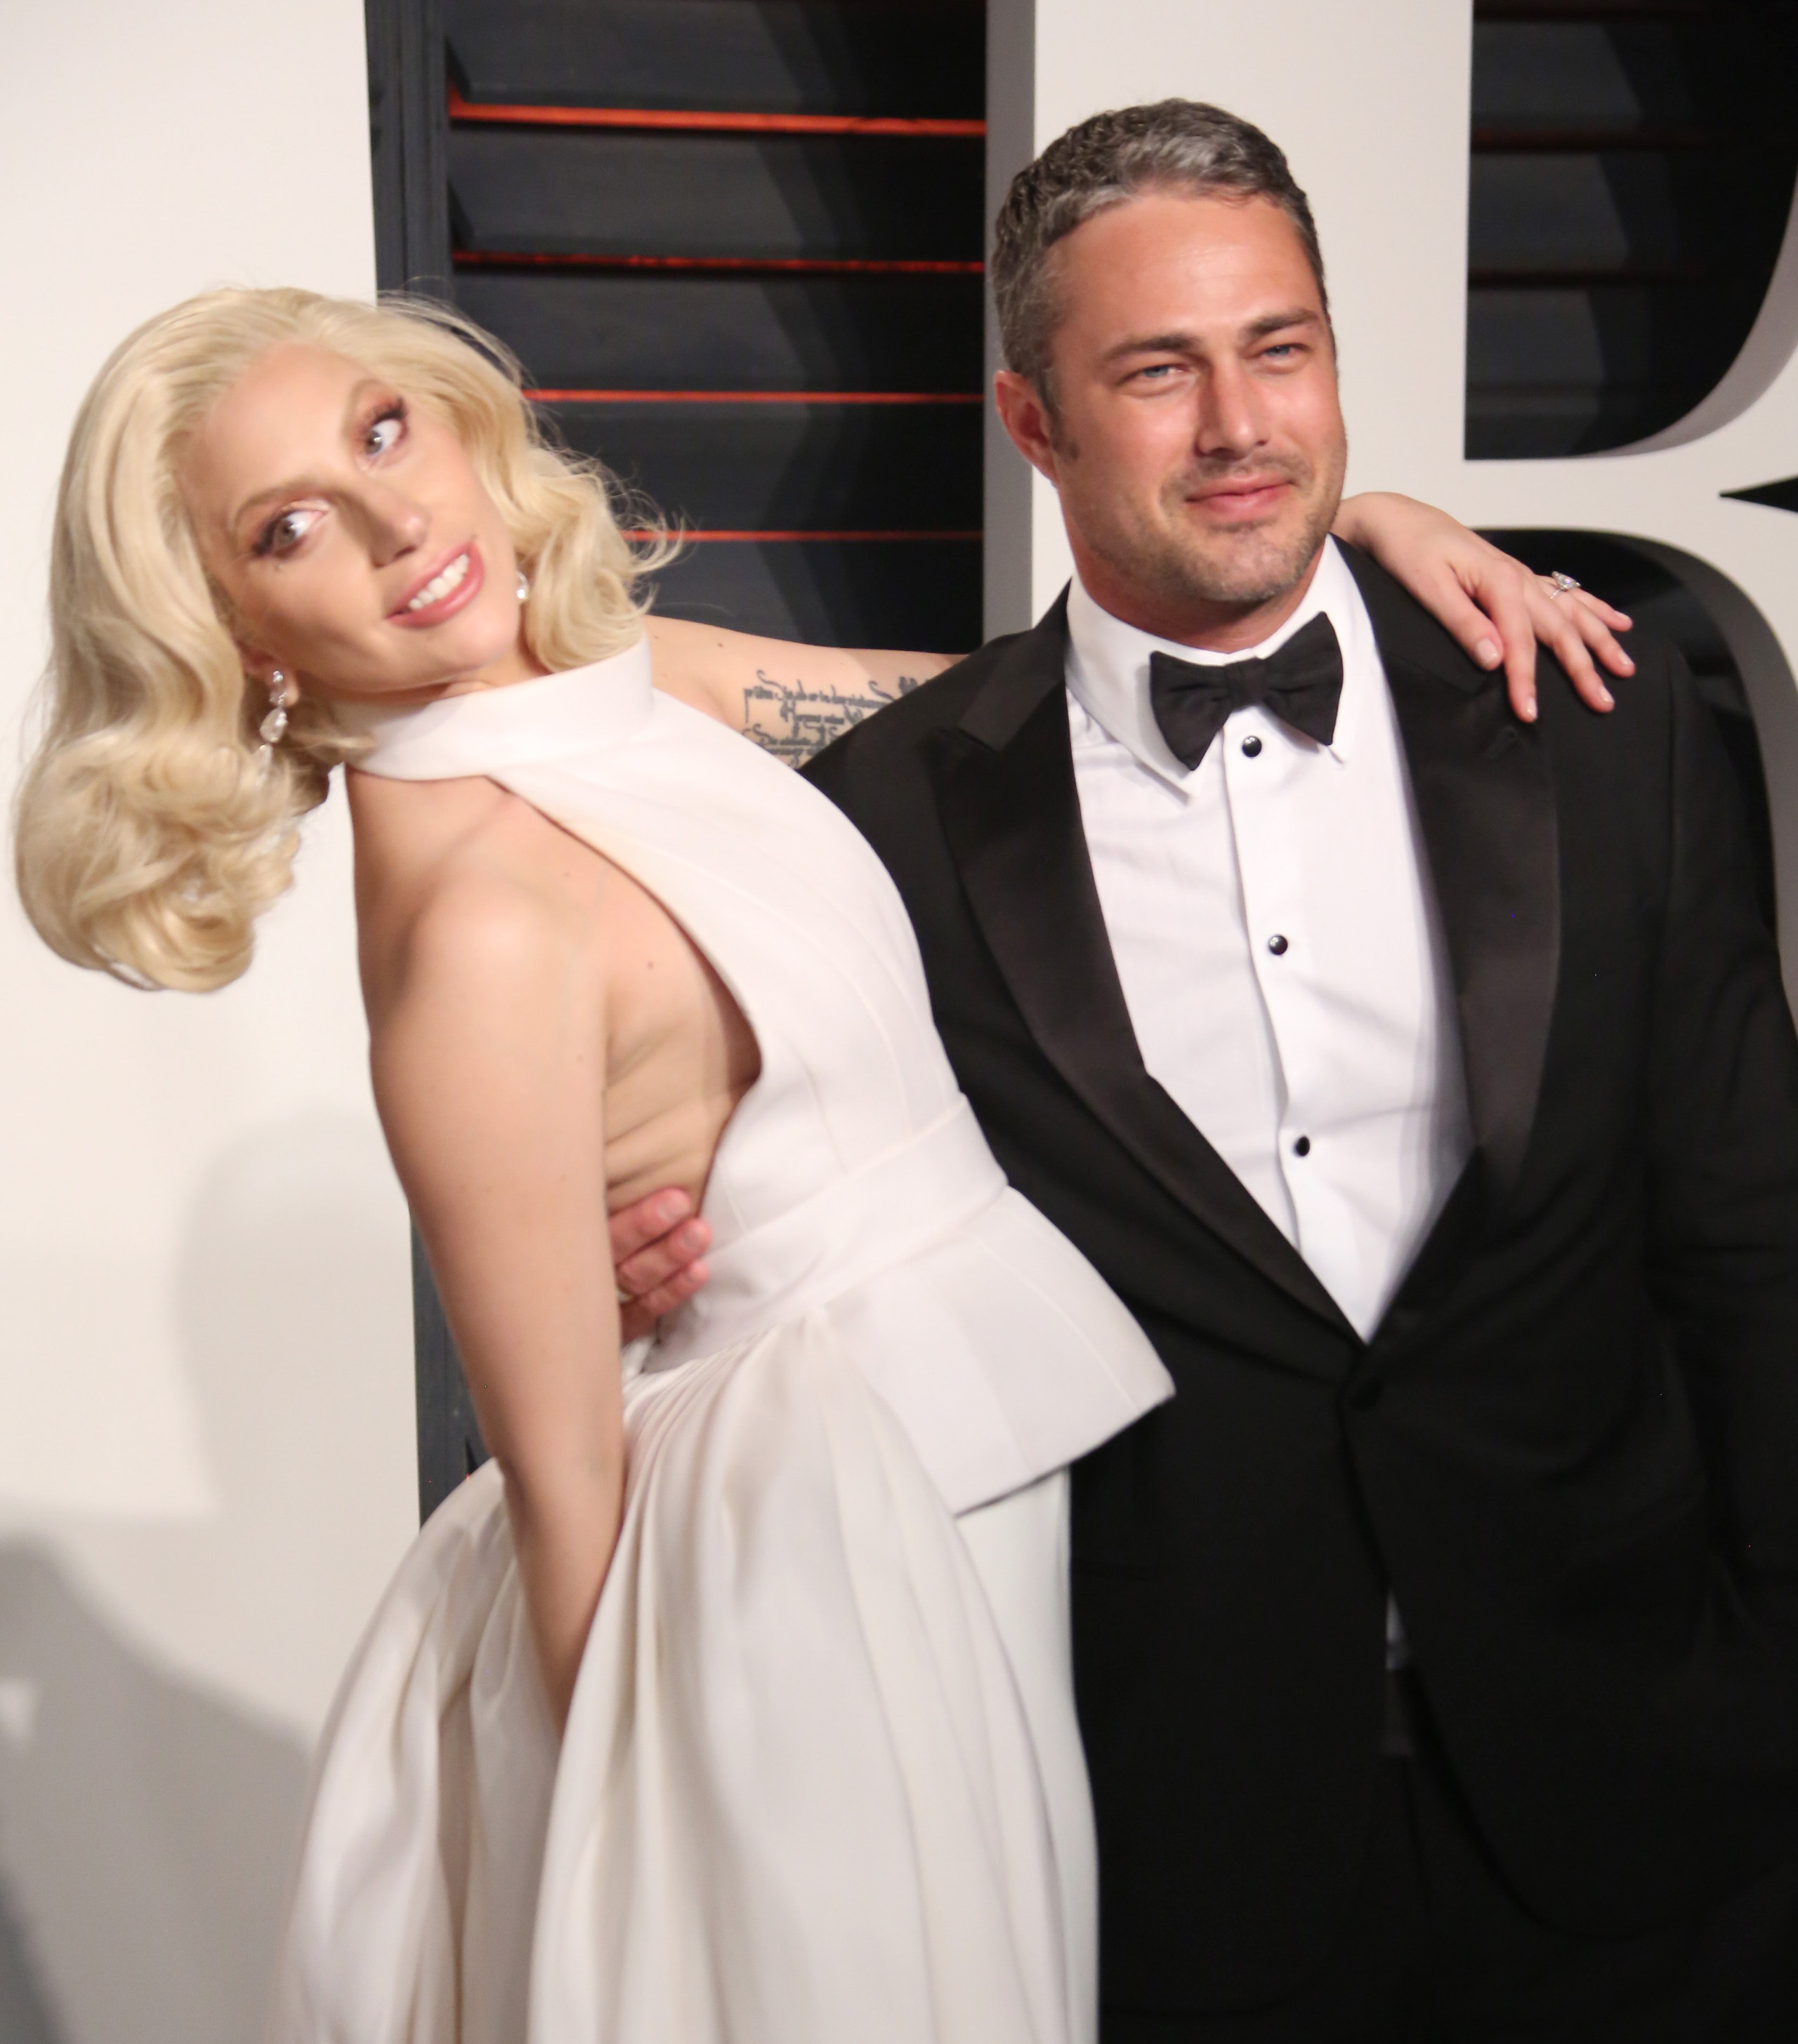 Lady Gaga and Taylor Kinney attend the 88th Annual Academy Awards in Los Angeles on Feb. 28, 2016.